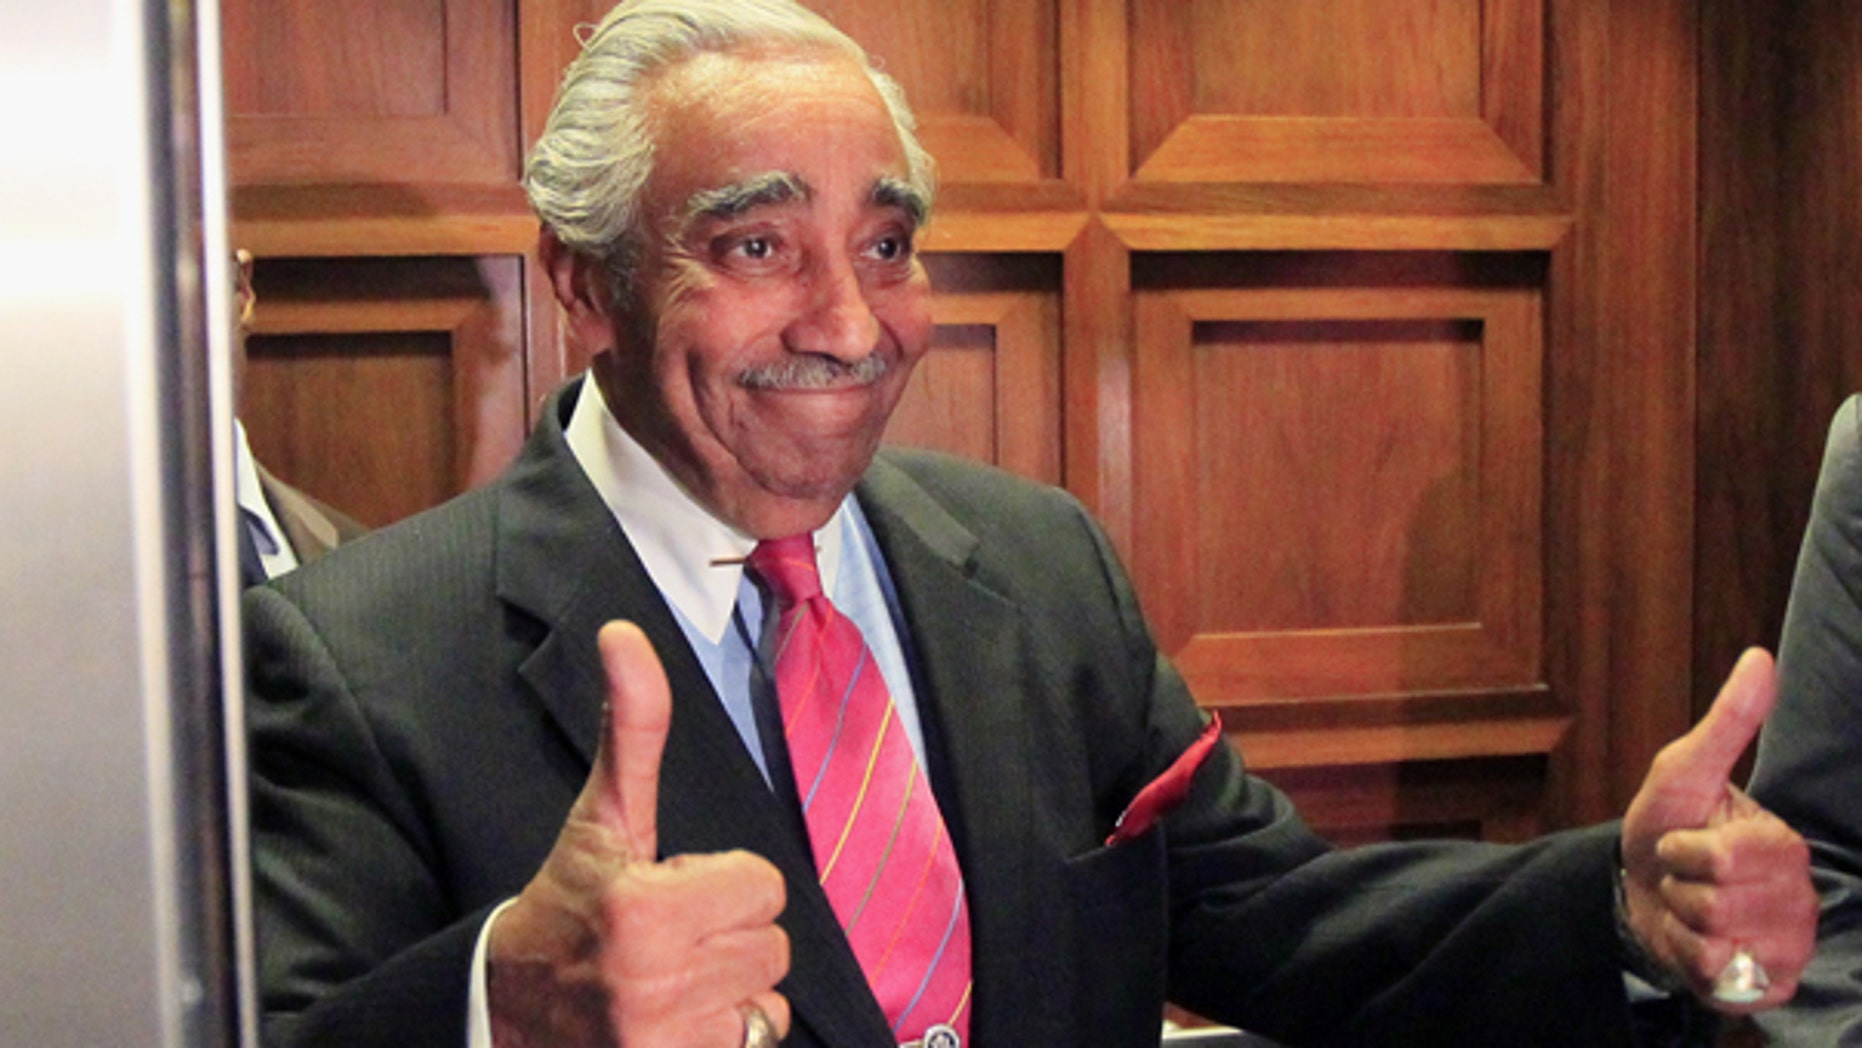 July 28: Rep. Charles Rangel, D-N.Y., gives thumbs up as he gets in the elevator to leave his office for a vote on Capitol Hill in Washington. (AP)